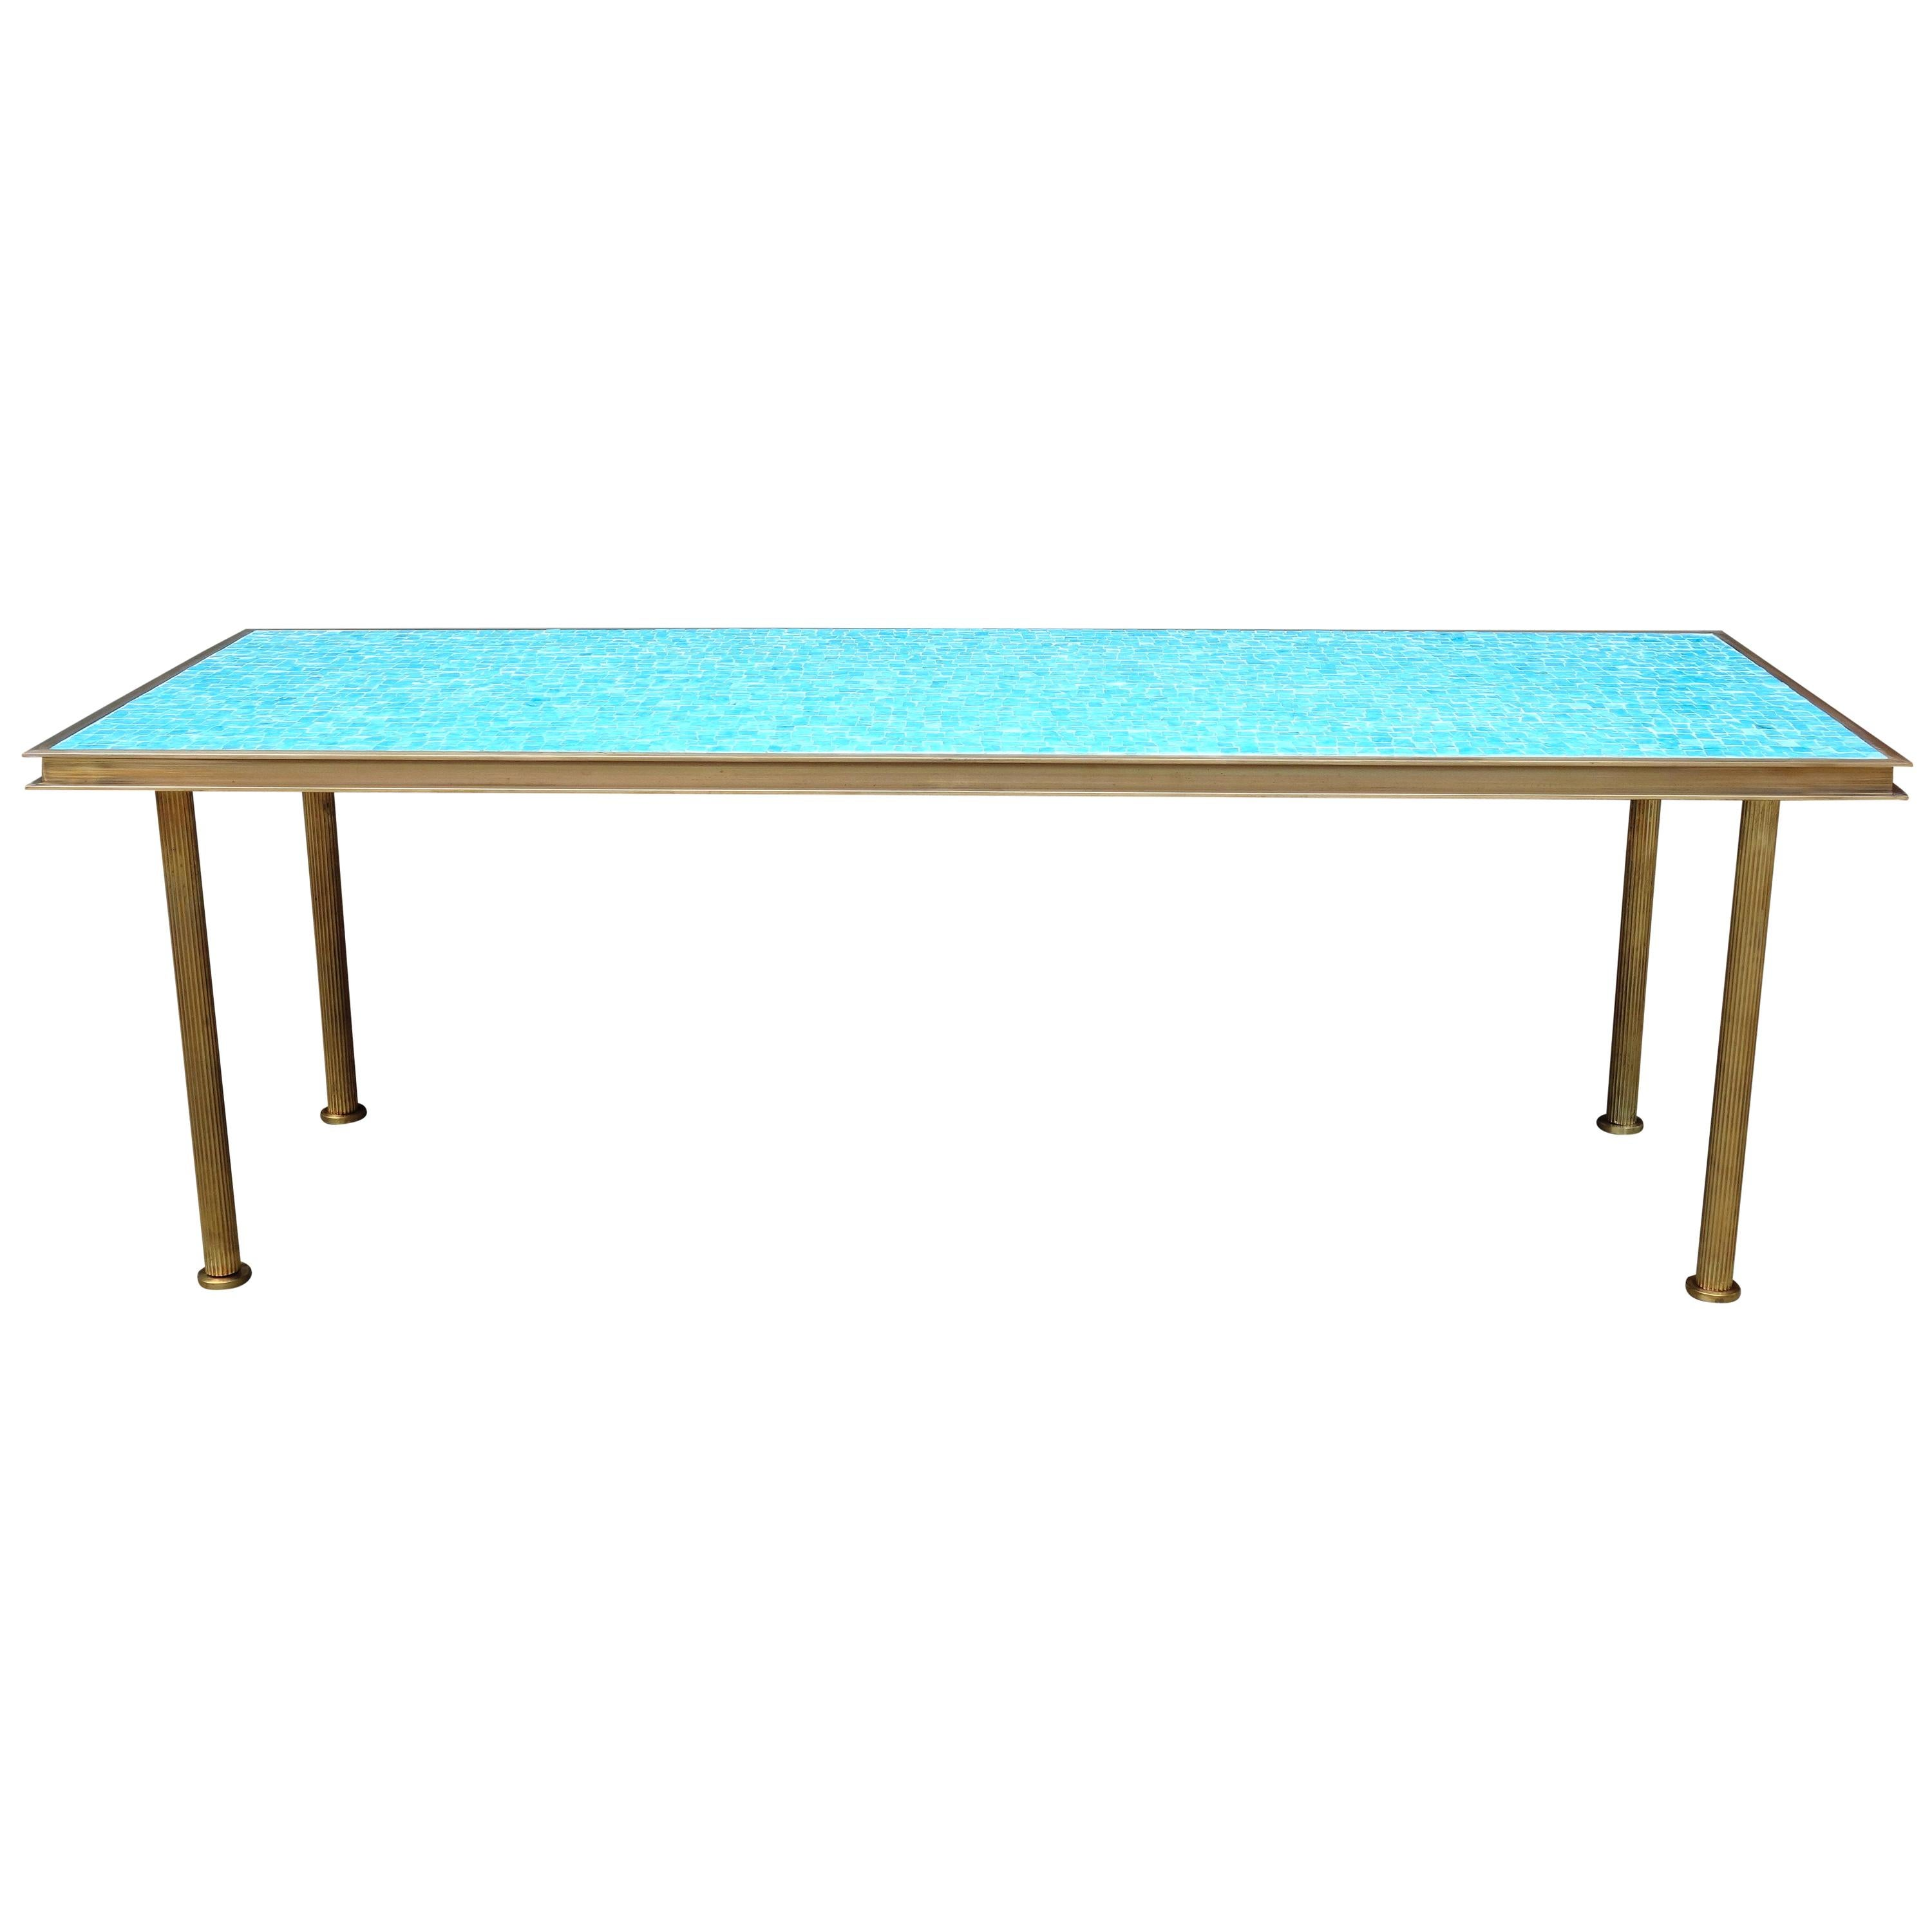 Midcentury Mosaic Coffee Table with Brass Frame